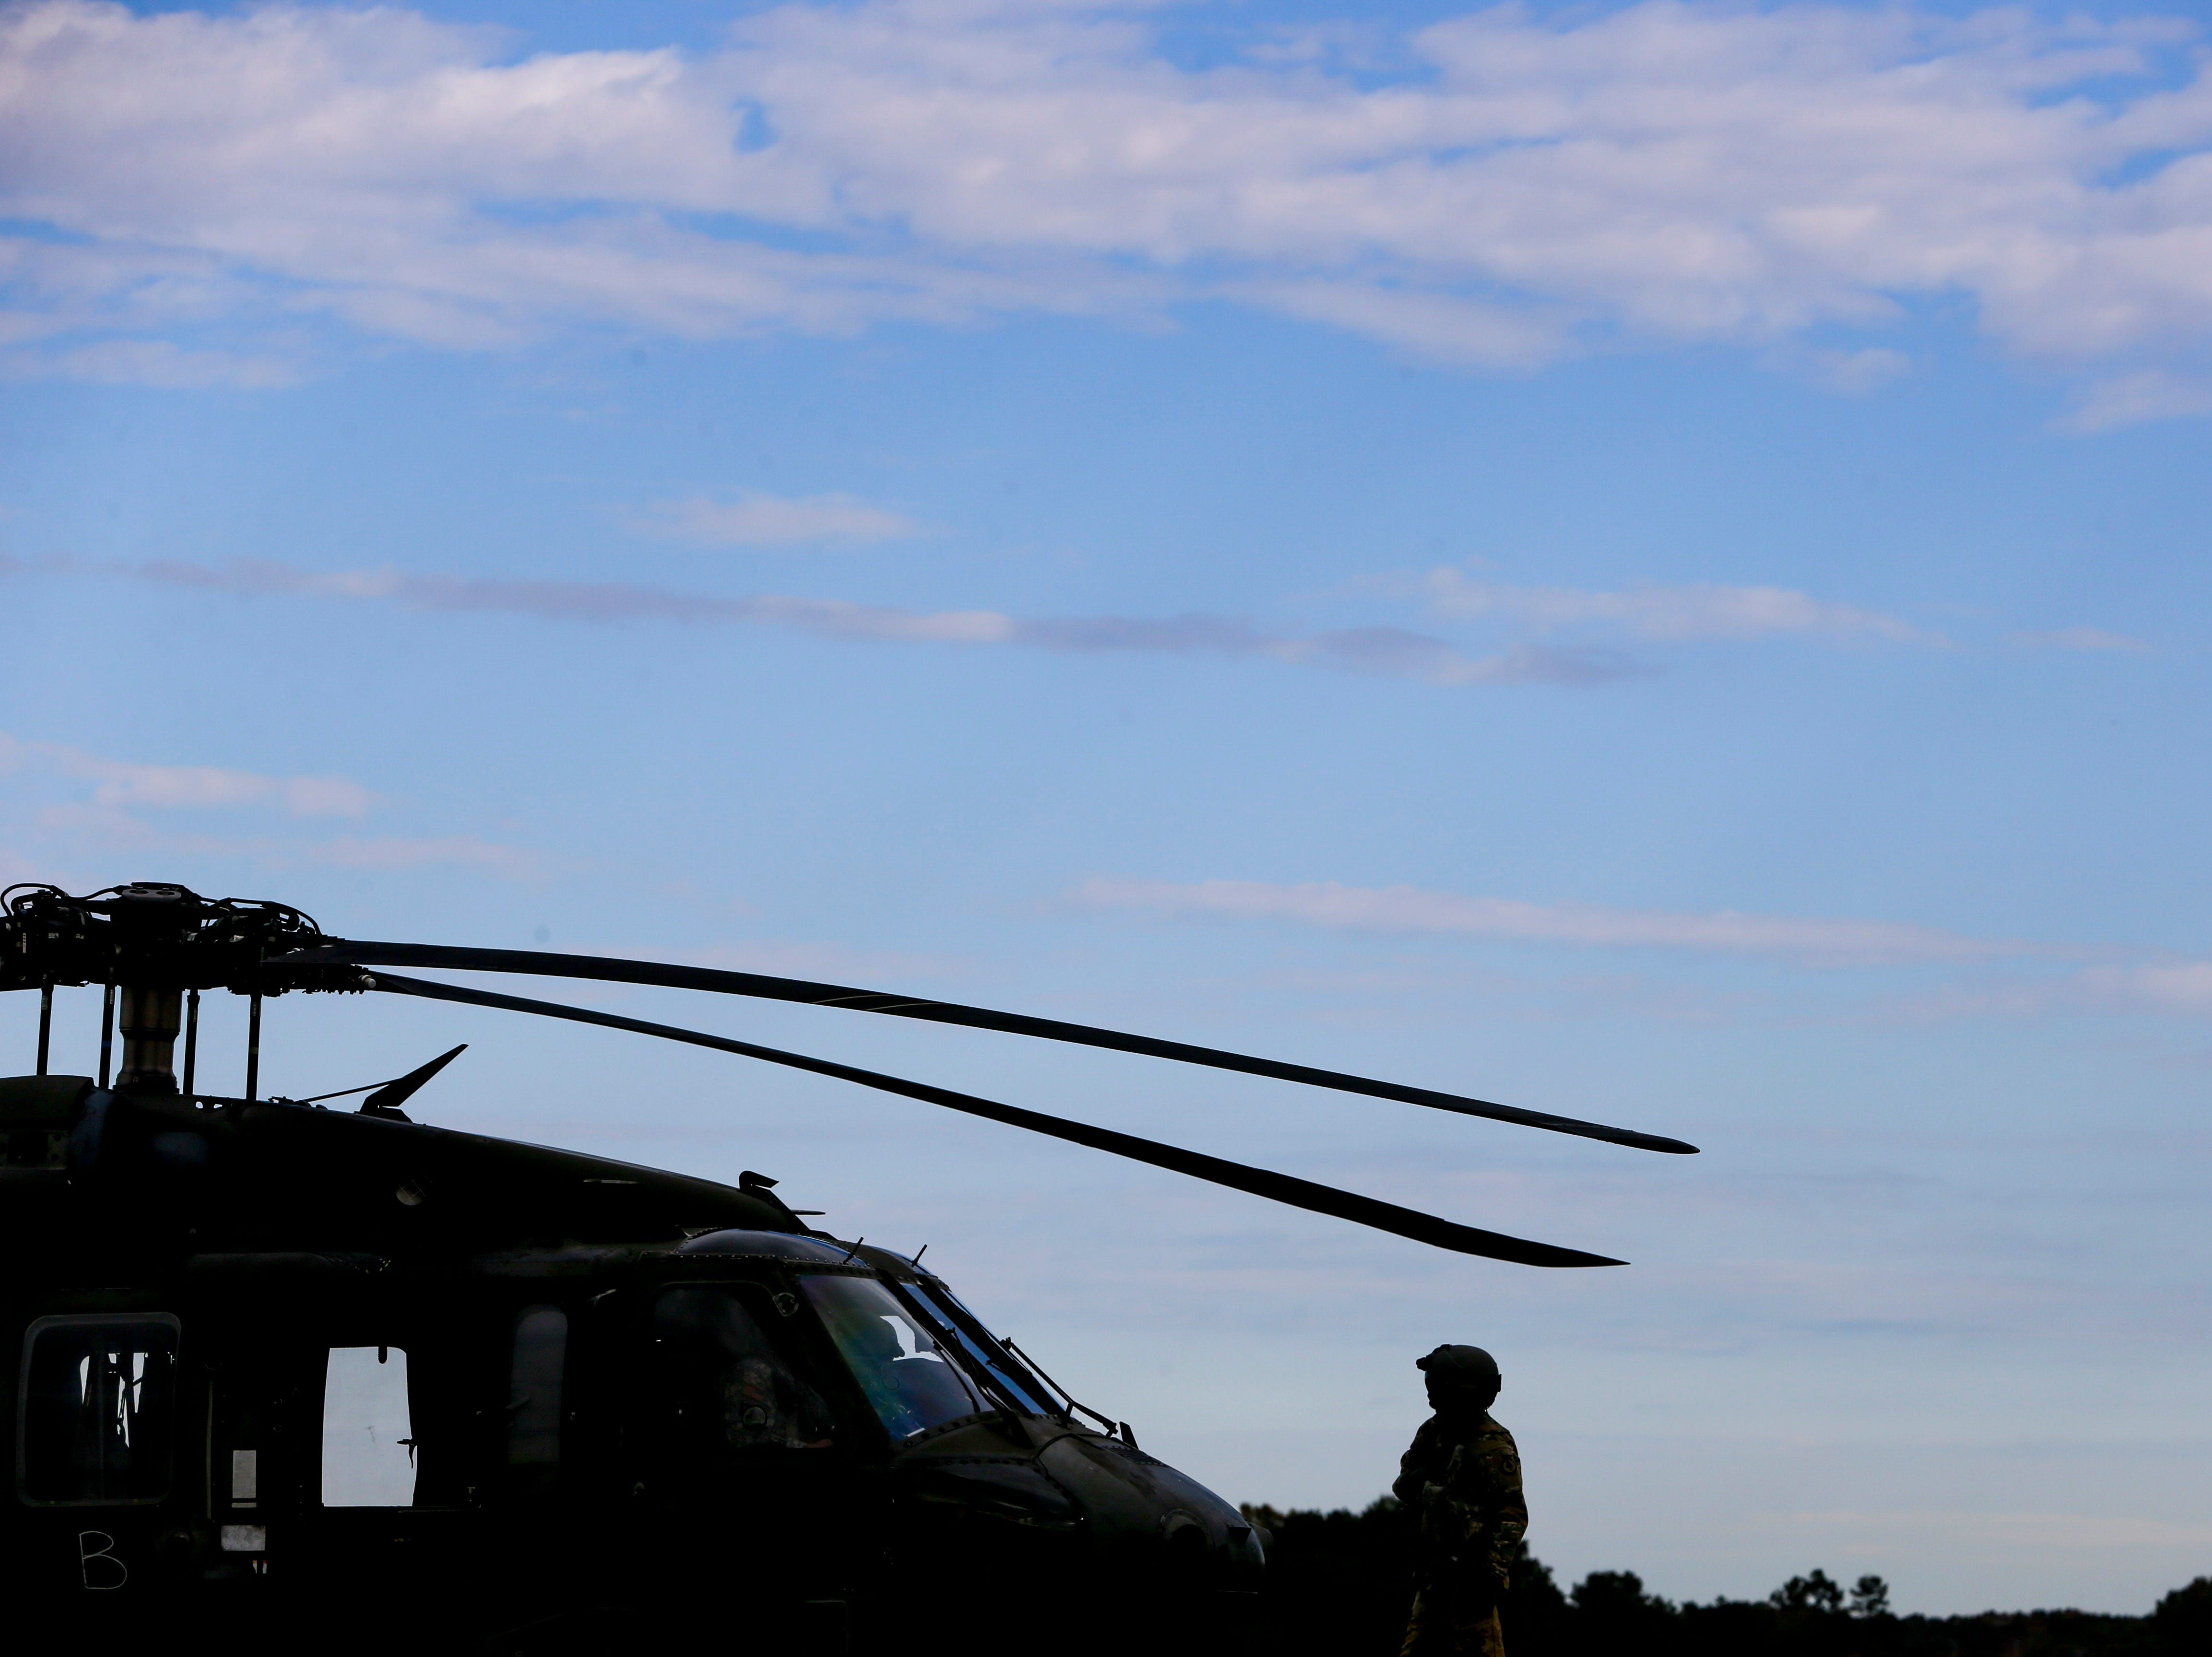 National Guardsmen do preparation with their Black Hawk helicopter before a flight during the annual Bosslift event put on by Employer Support of the Guard and Reserve (ESGR) and the Tennessee National Guard at Army Aviation Facility in Jackson, Tenn., on Thursday, Nov. 8, 2018.